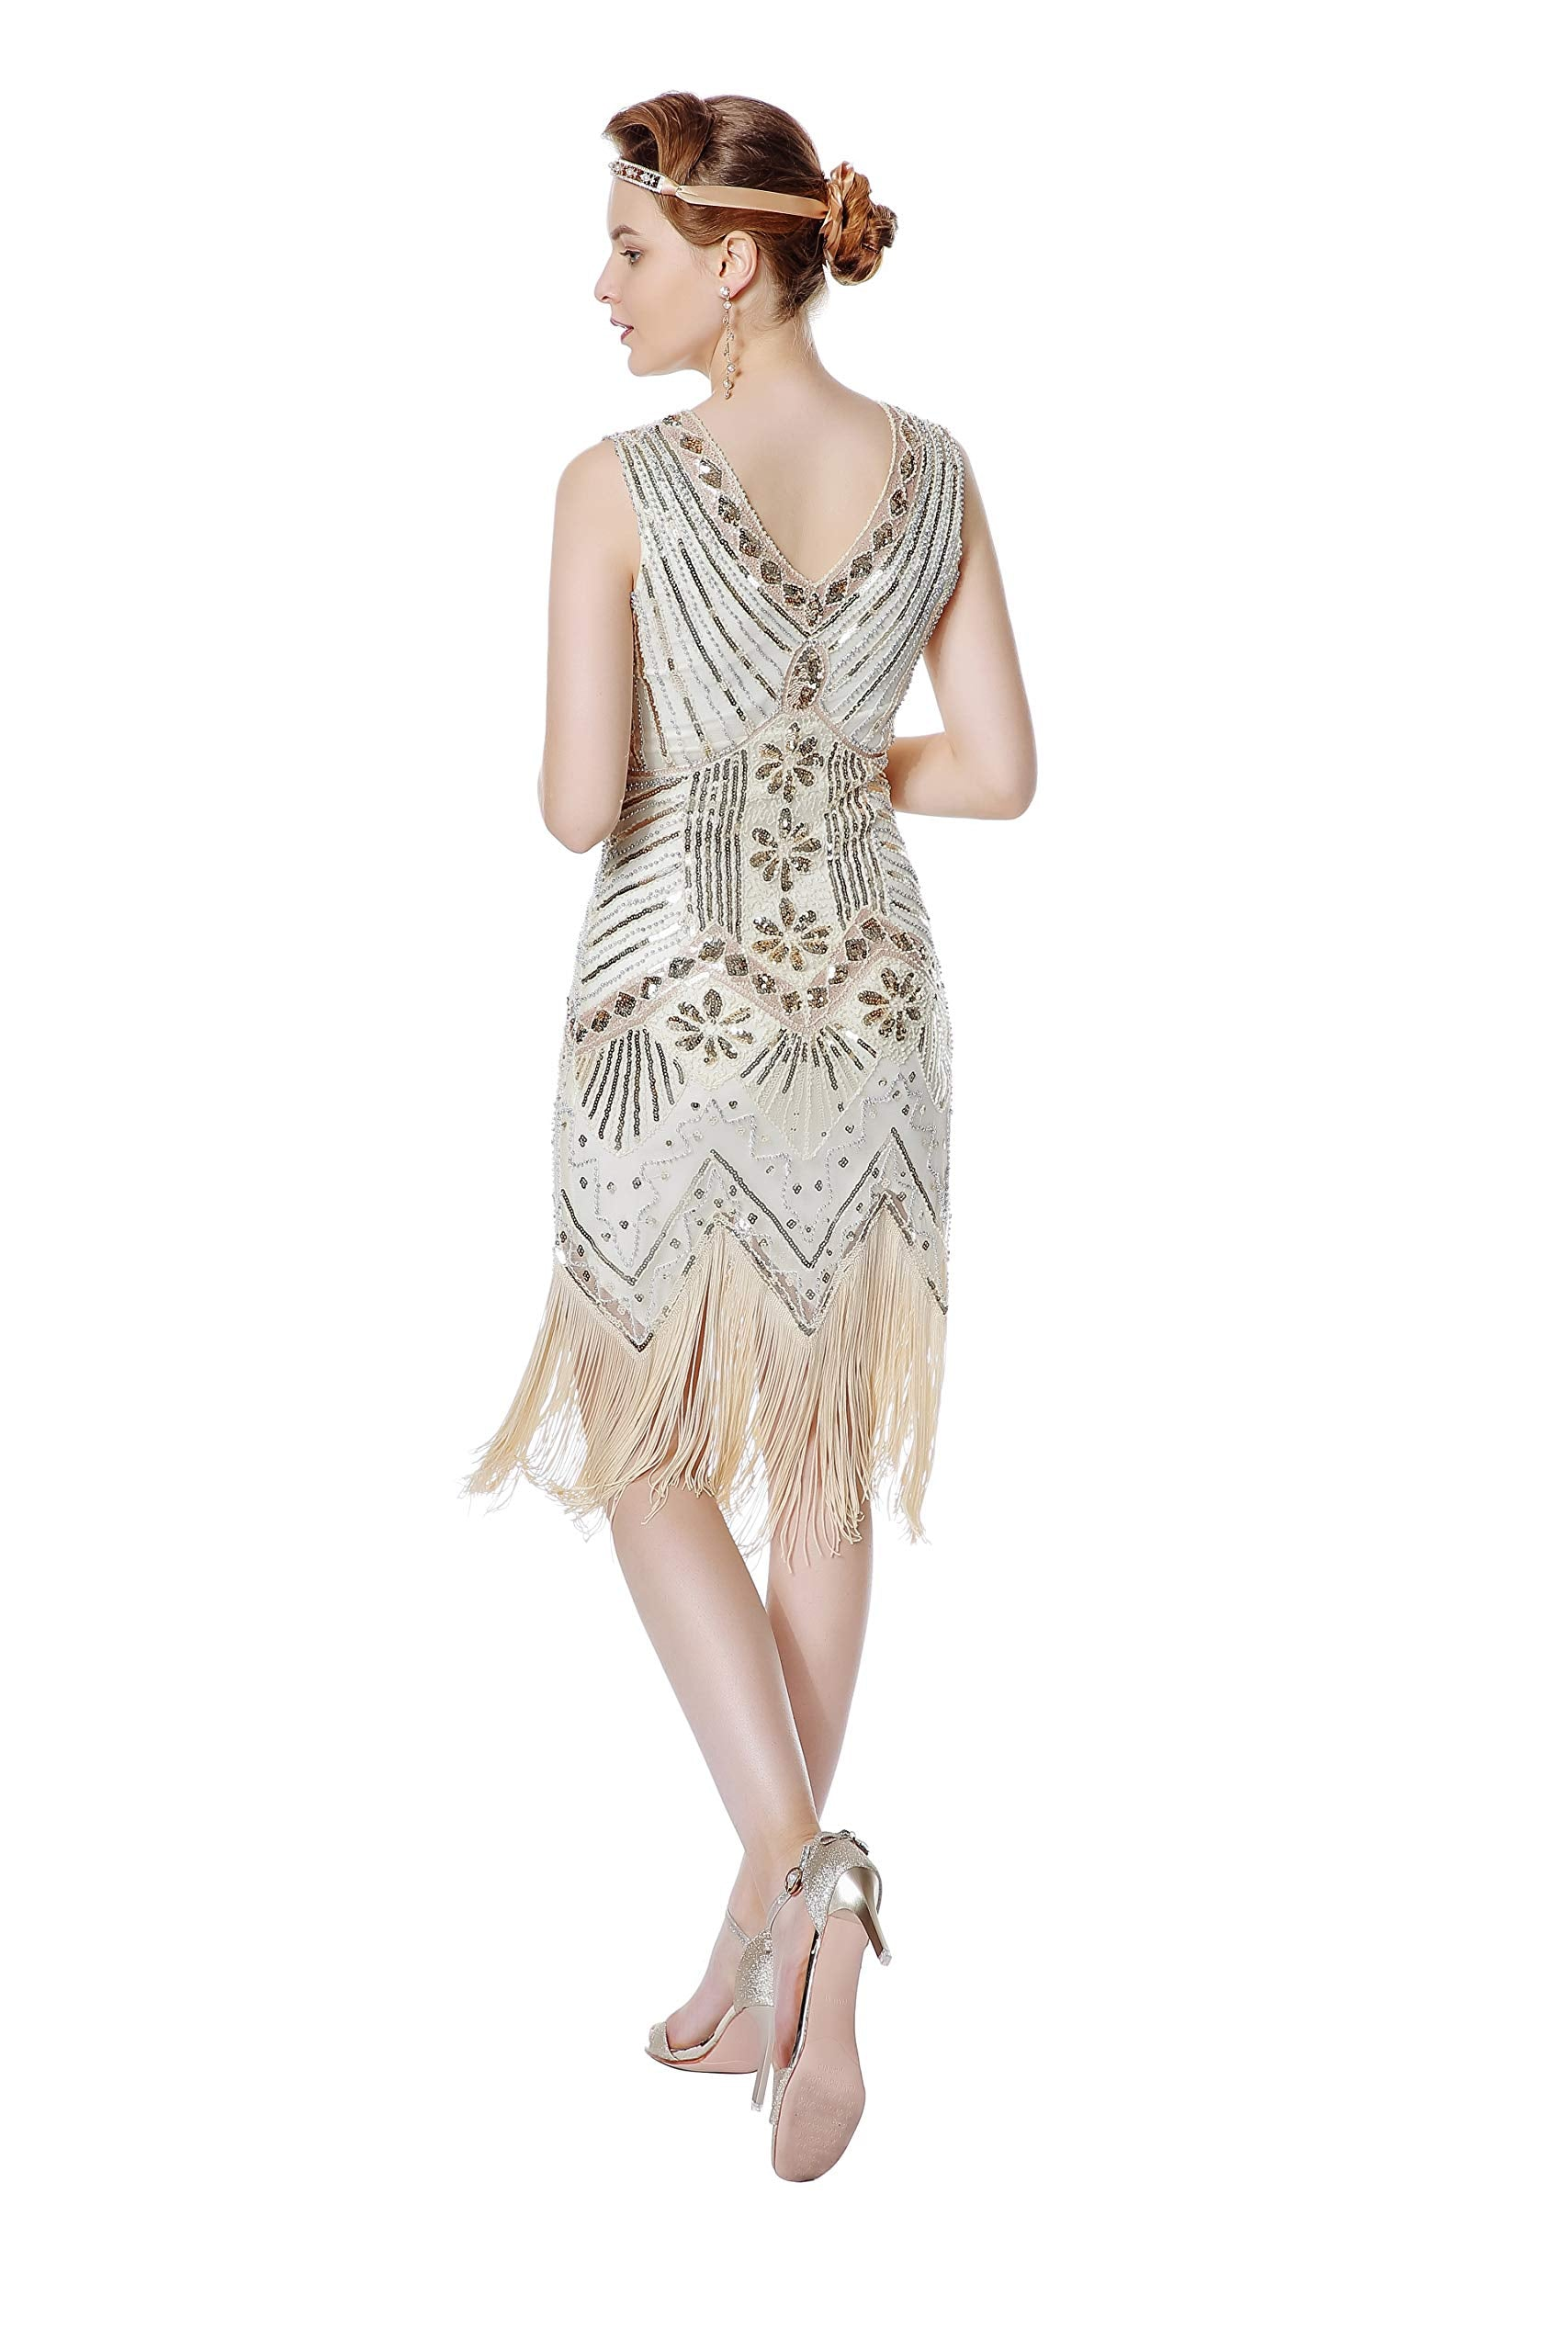 Metme Women's Flapper Dress 1920s V Neck Beaded Fringed Gatsby Theme Roaring 20s Dress for Prom Apricot